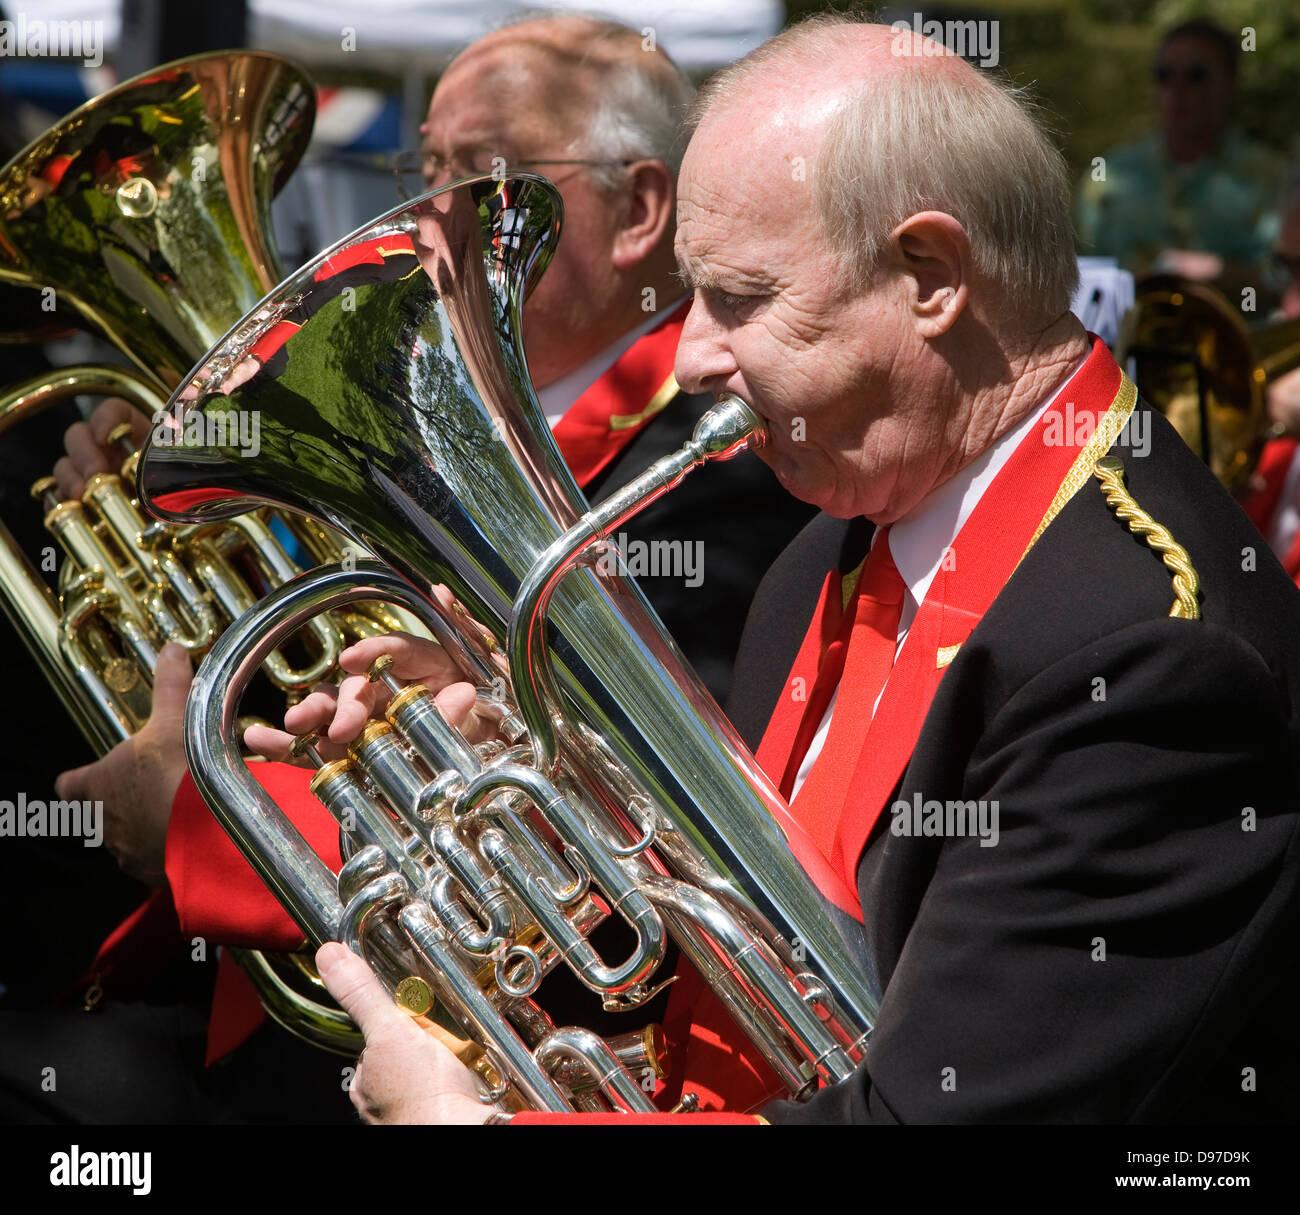 Musicians in a brass band perform during a country fair at Helmingham Hall, Suffolk, England - Stock Image